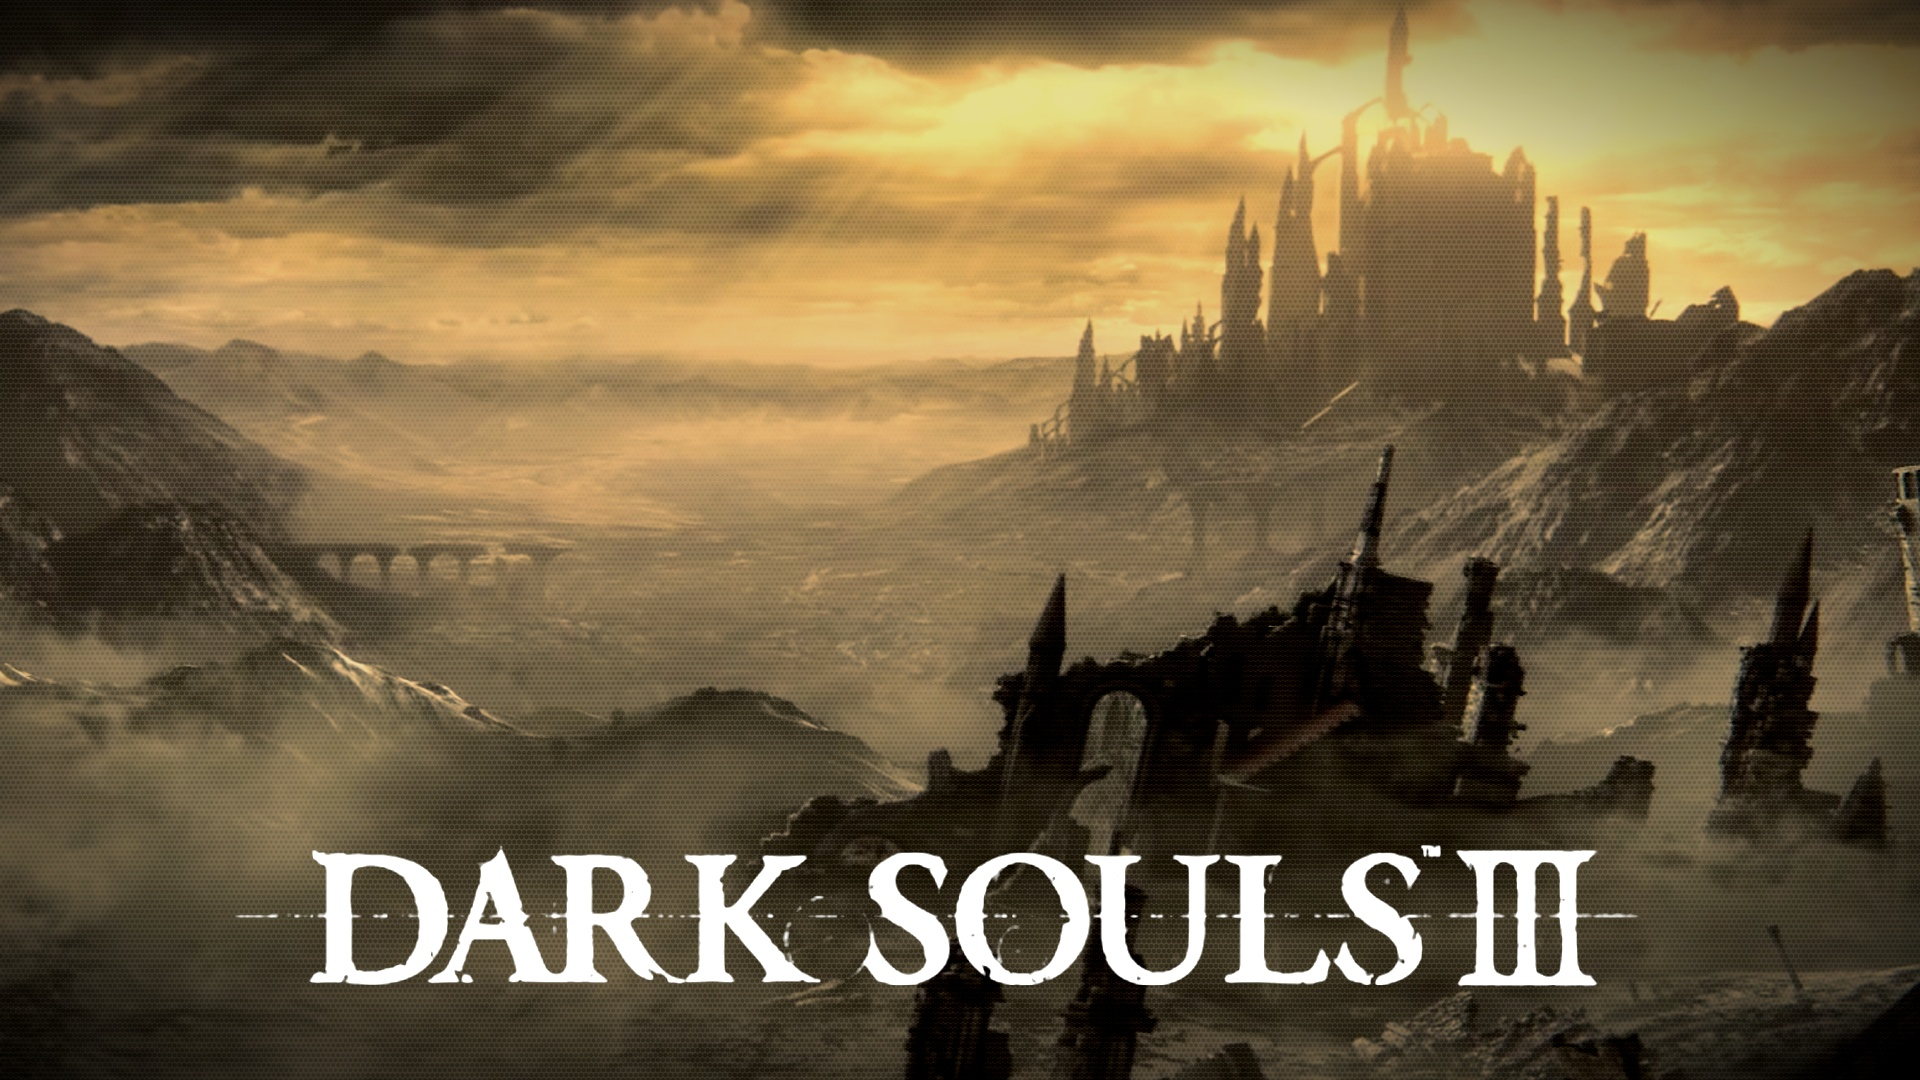 Dark Souls 3 Wallpapers, Pictures, Images